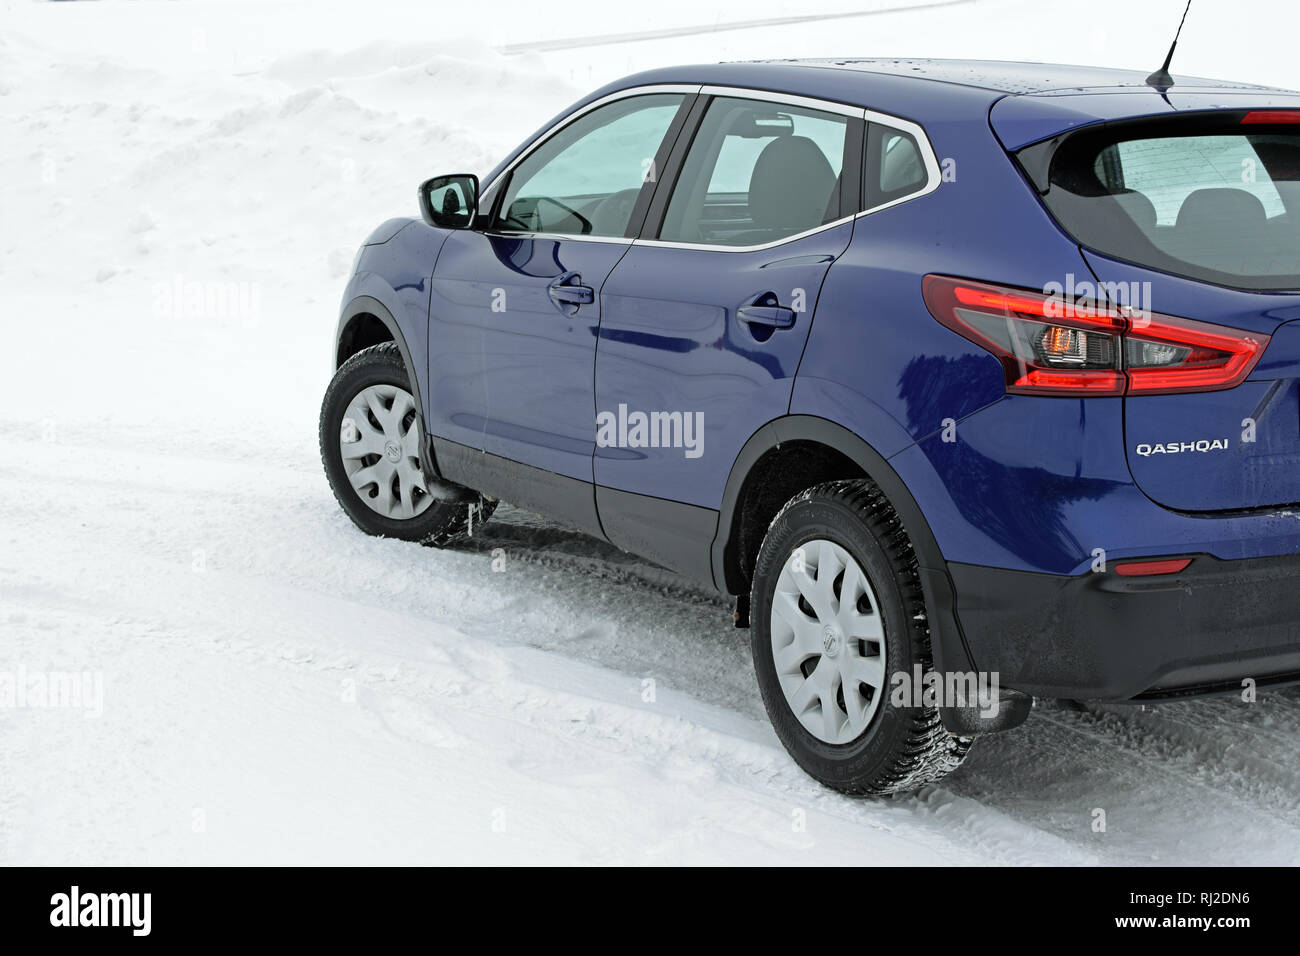 Aura, Finland - February 2, 2019: New Nissan Qashqai 2019 model (color ink blue) on snow. - Stock Image